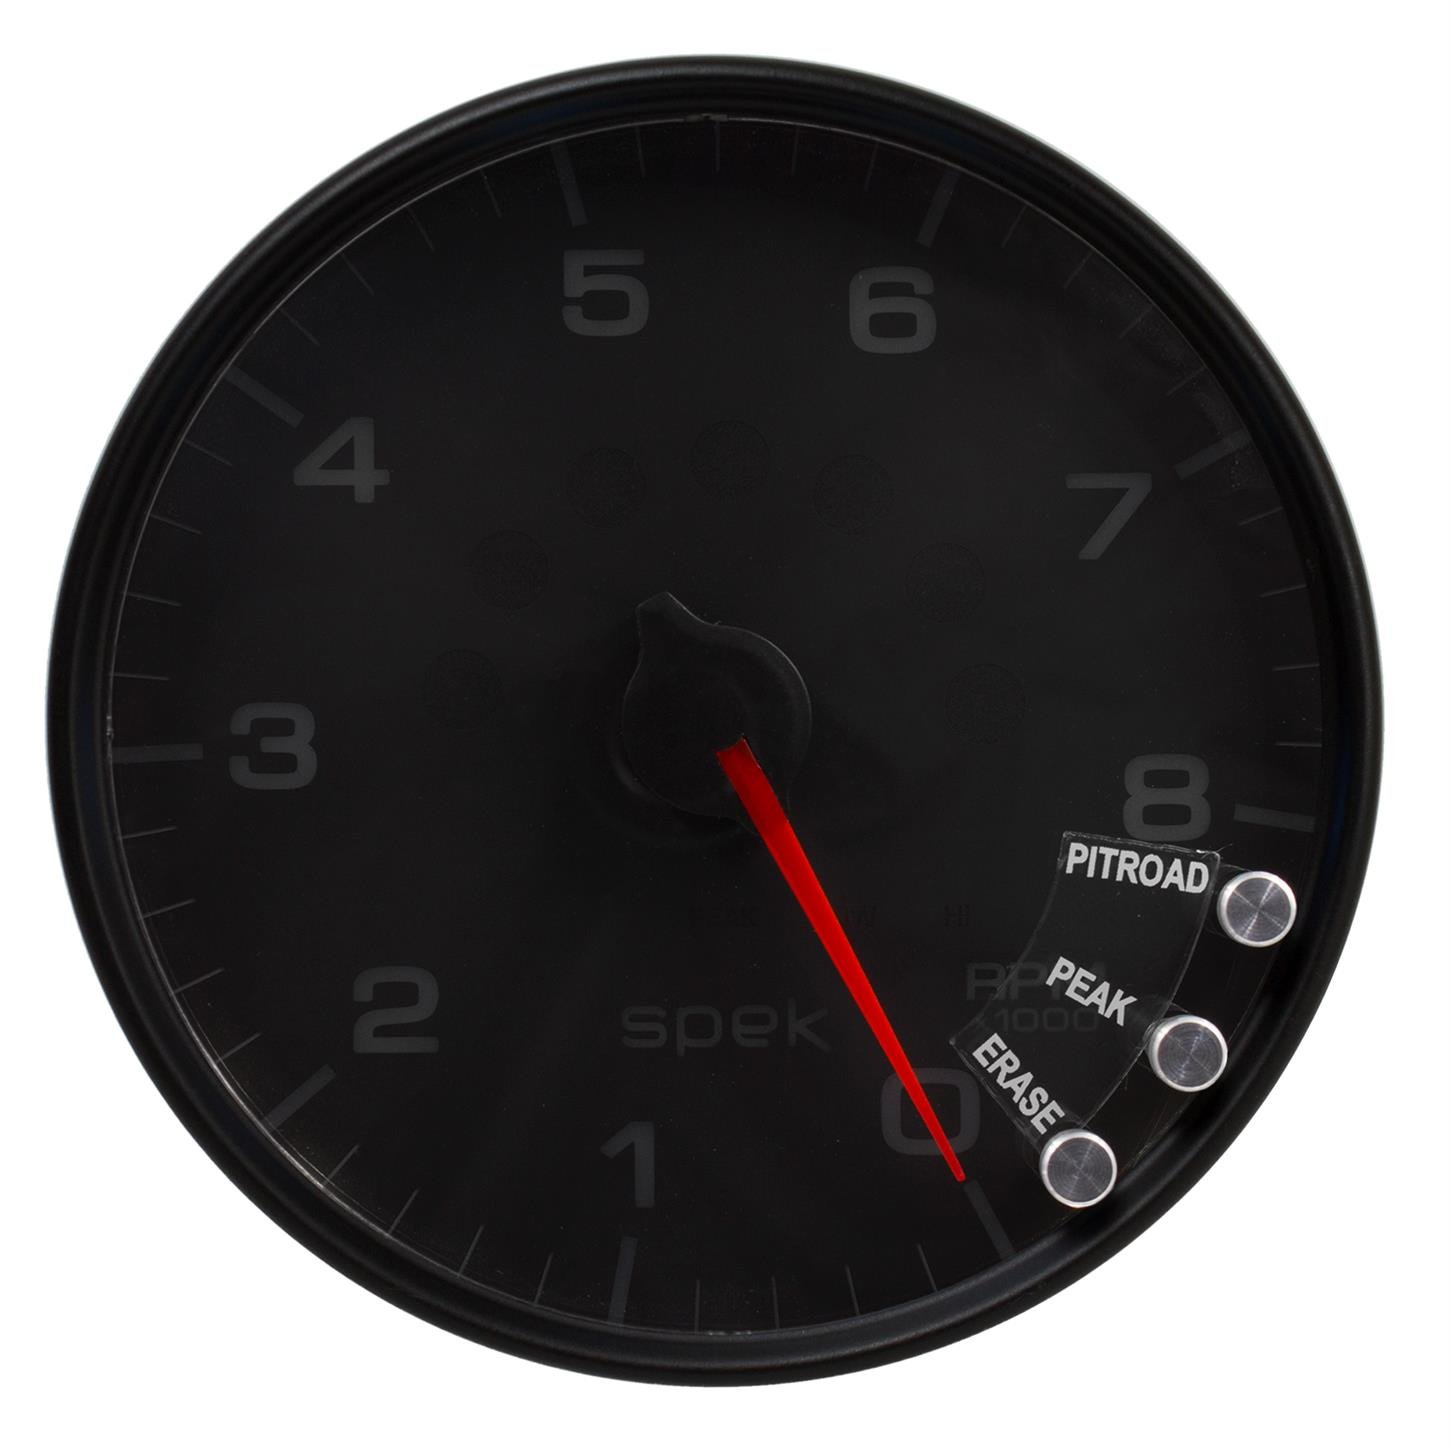 Auto Meter P23832 Gauge Spek-Pro 5 Black W//Shift Light /& Peak Mem 8K RPM 5 Tachometer